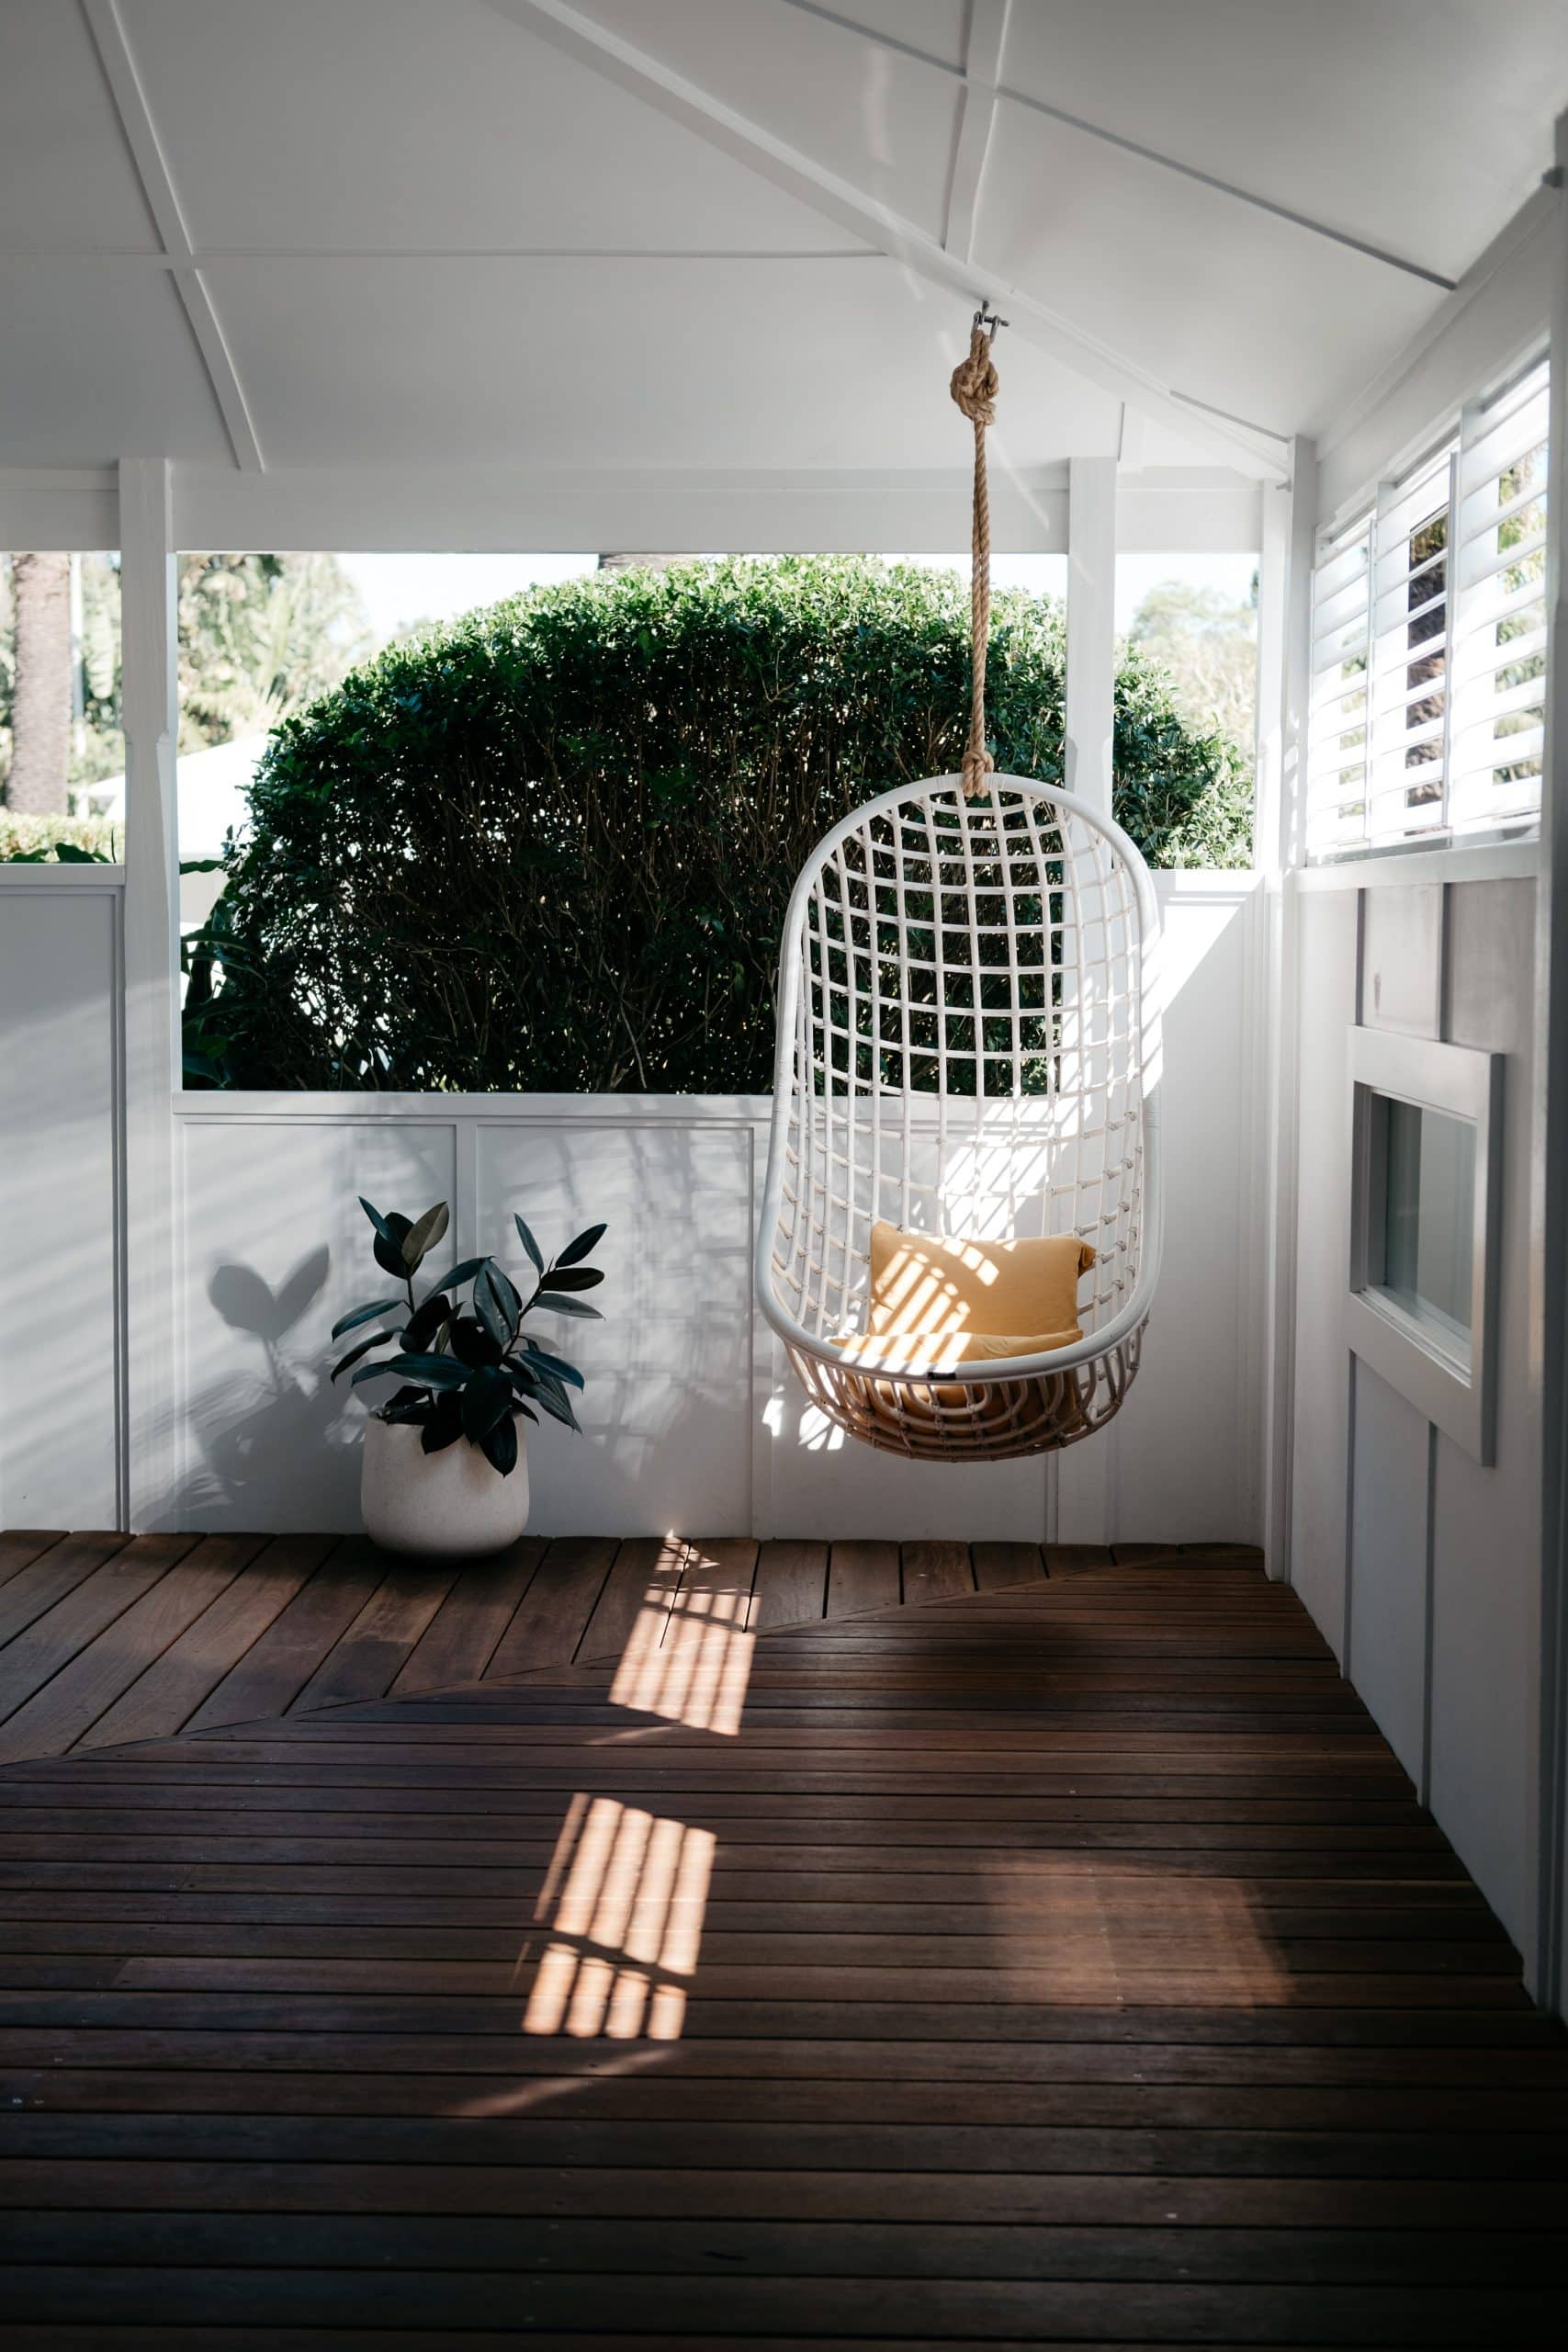 How to Decorate and Enjoy Your Porch Swing